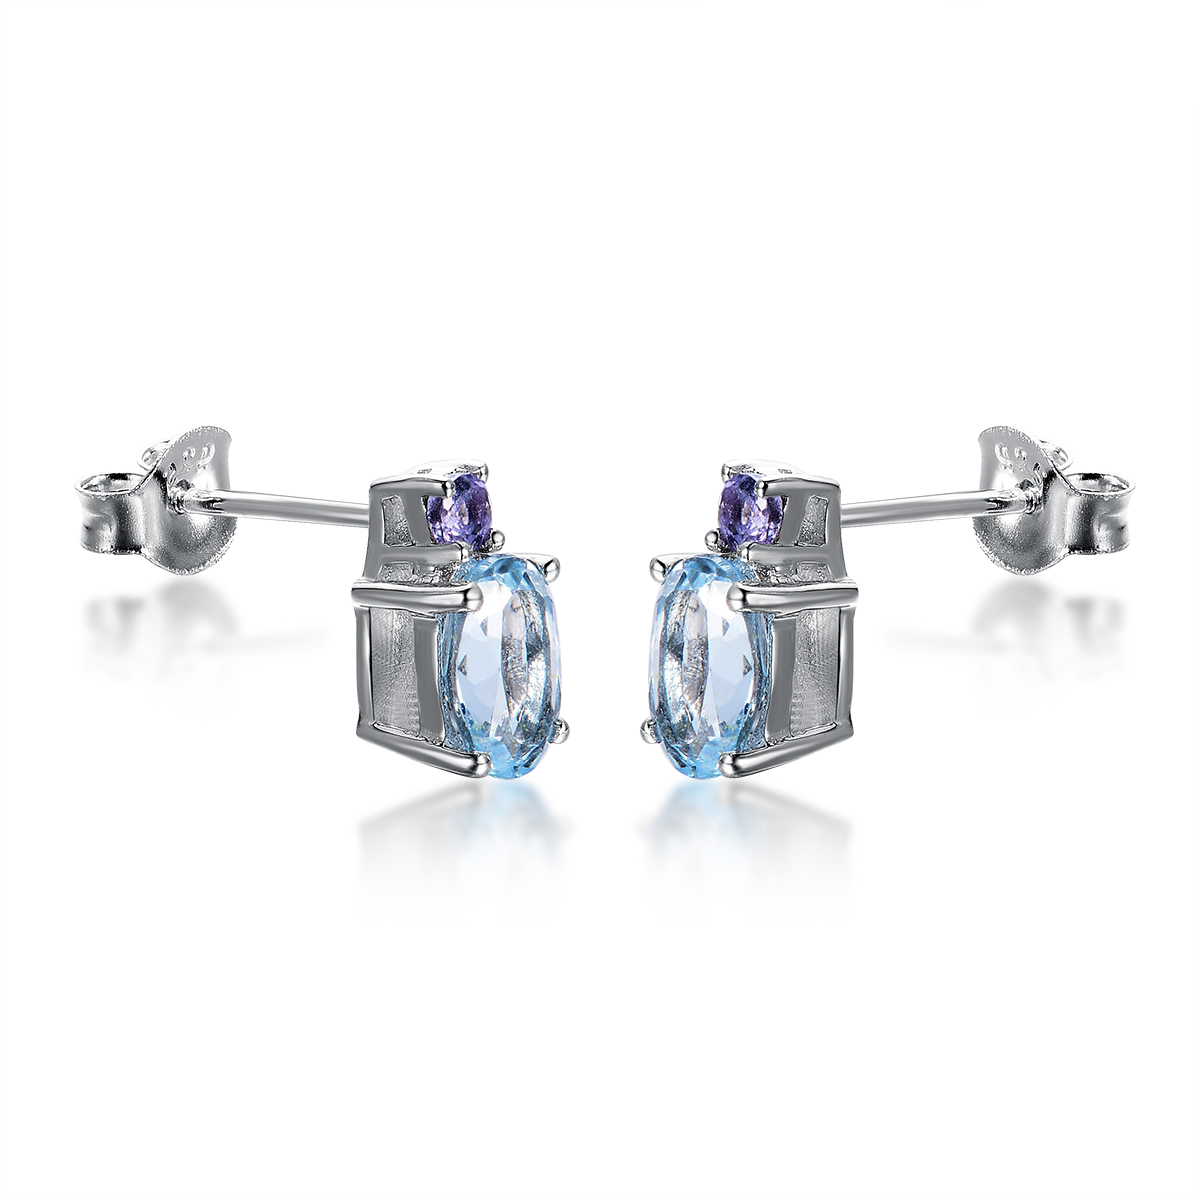 Hutang Natural Blue Topaz & Tanzanite Stud Earrings Solid 925 Sterling  Silver Gemstone Fine Jewelry Women's Gift